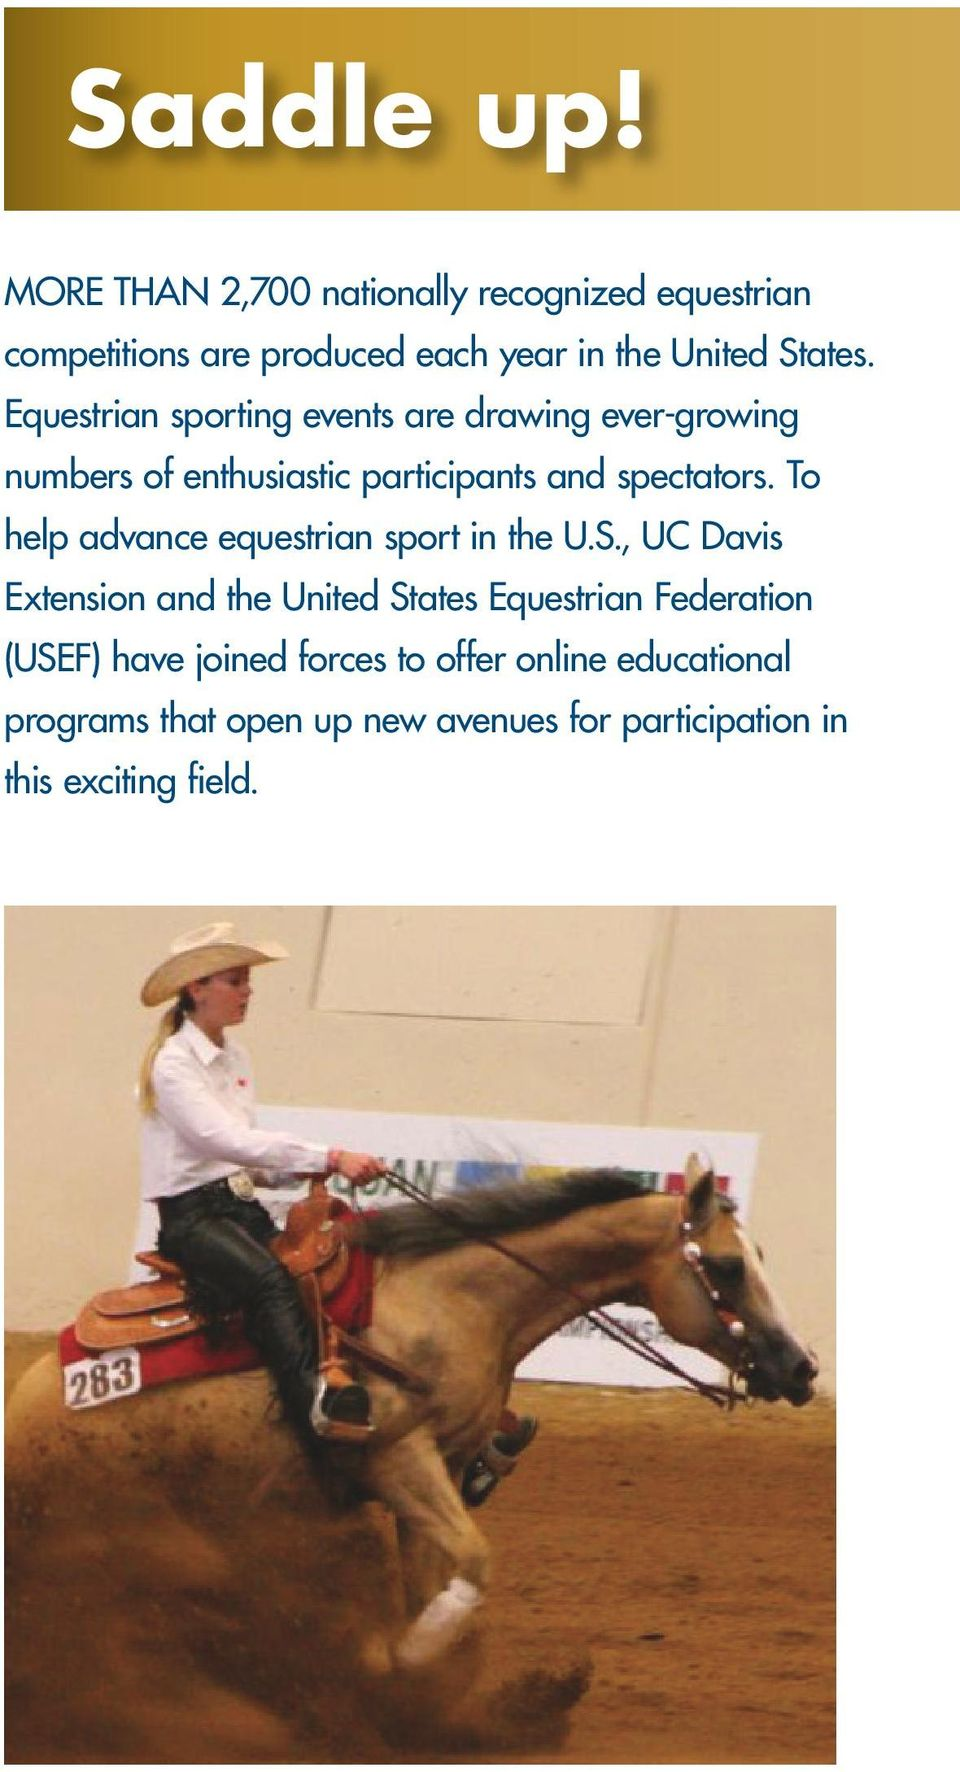 Equestrian sporting events are drawing ever-growing numbers of enthusiastic participants and spectators.